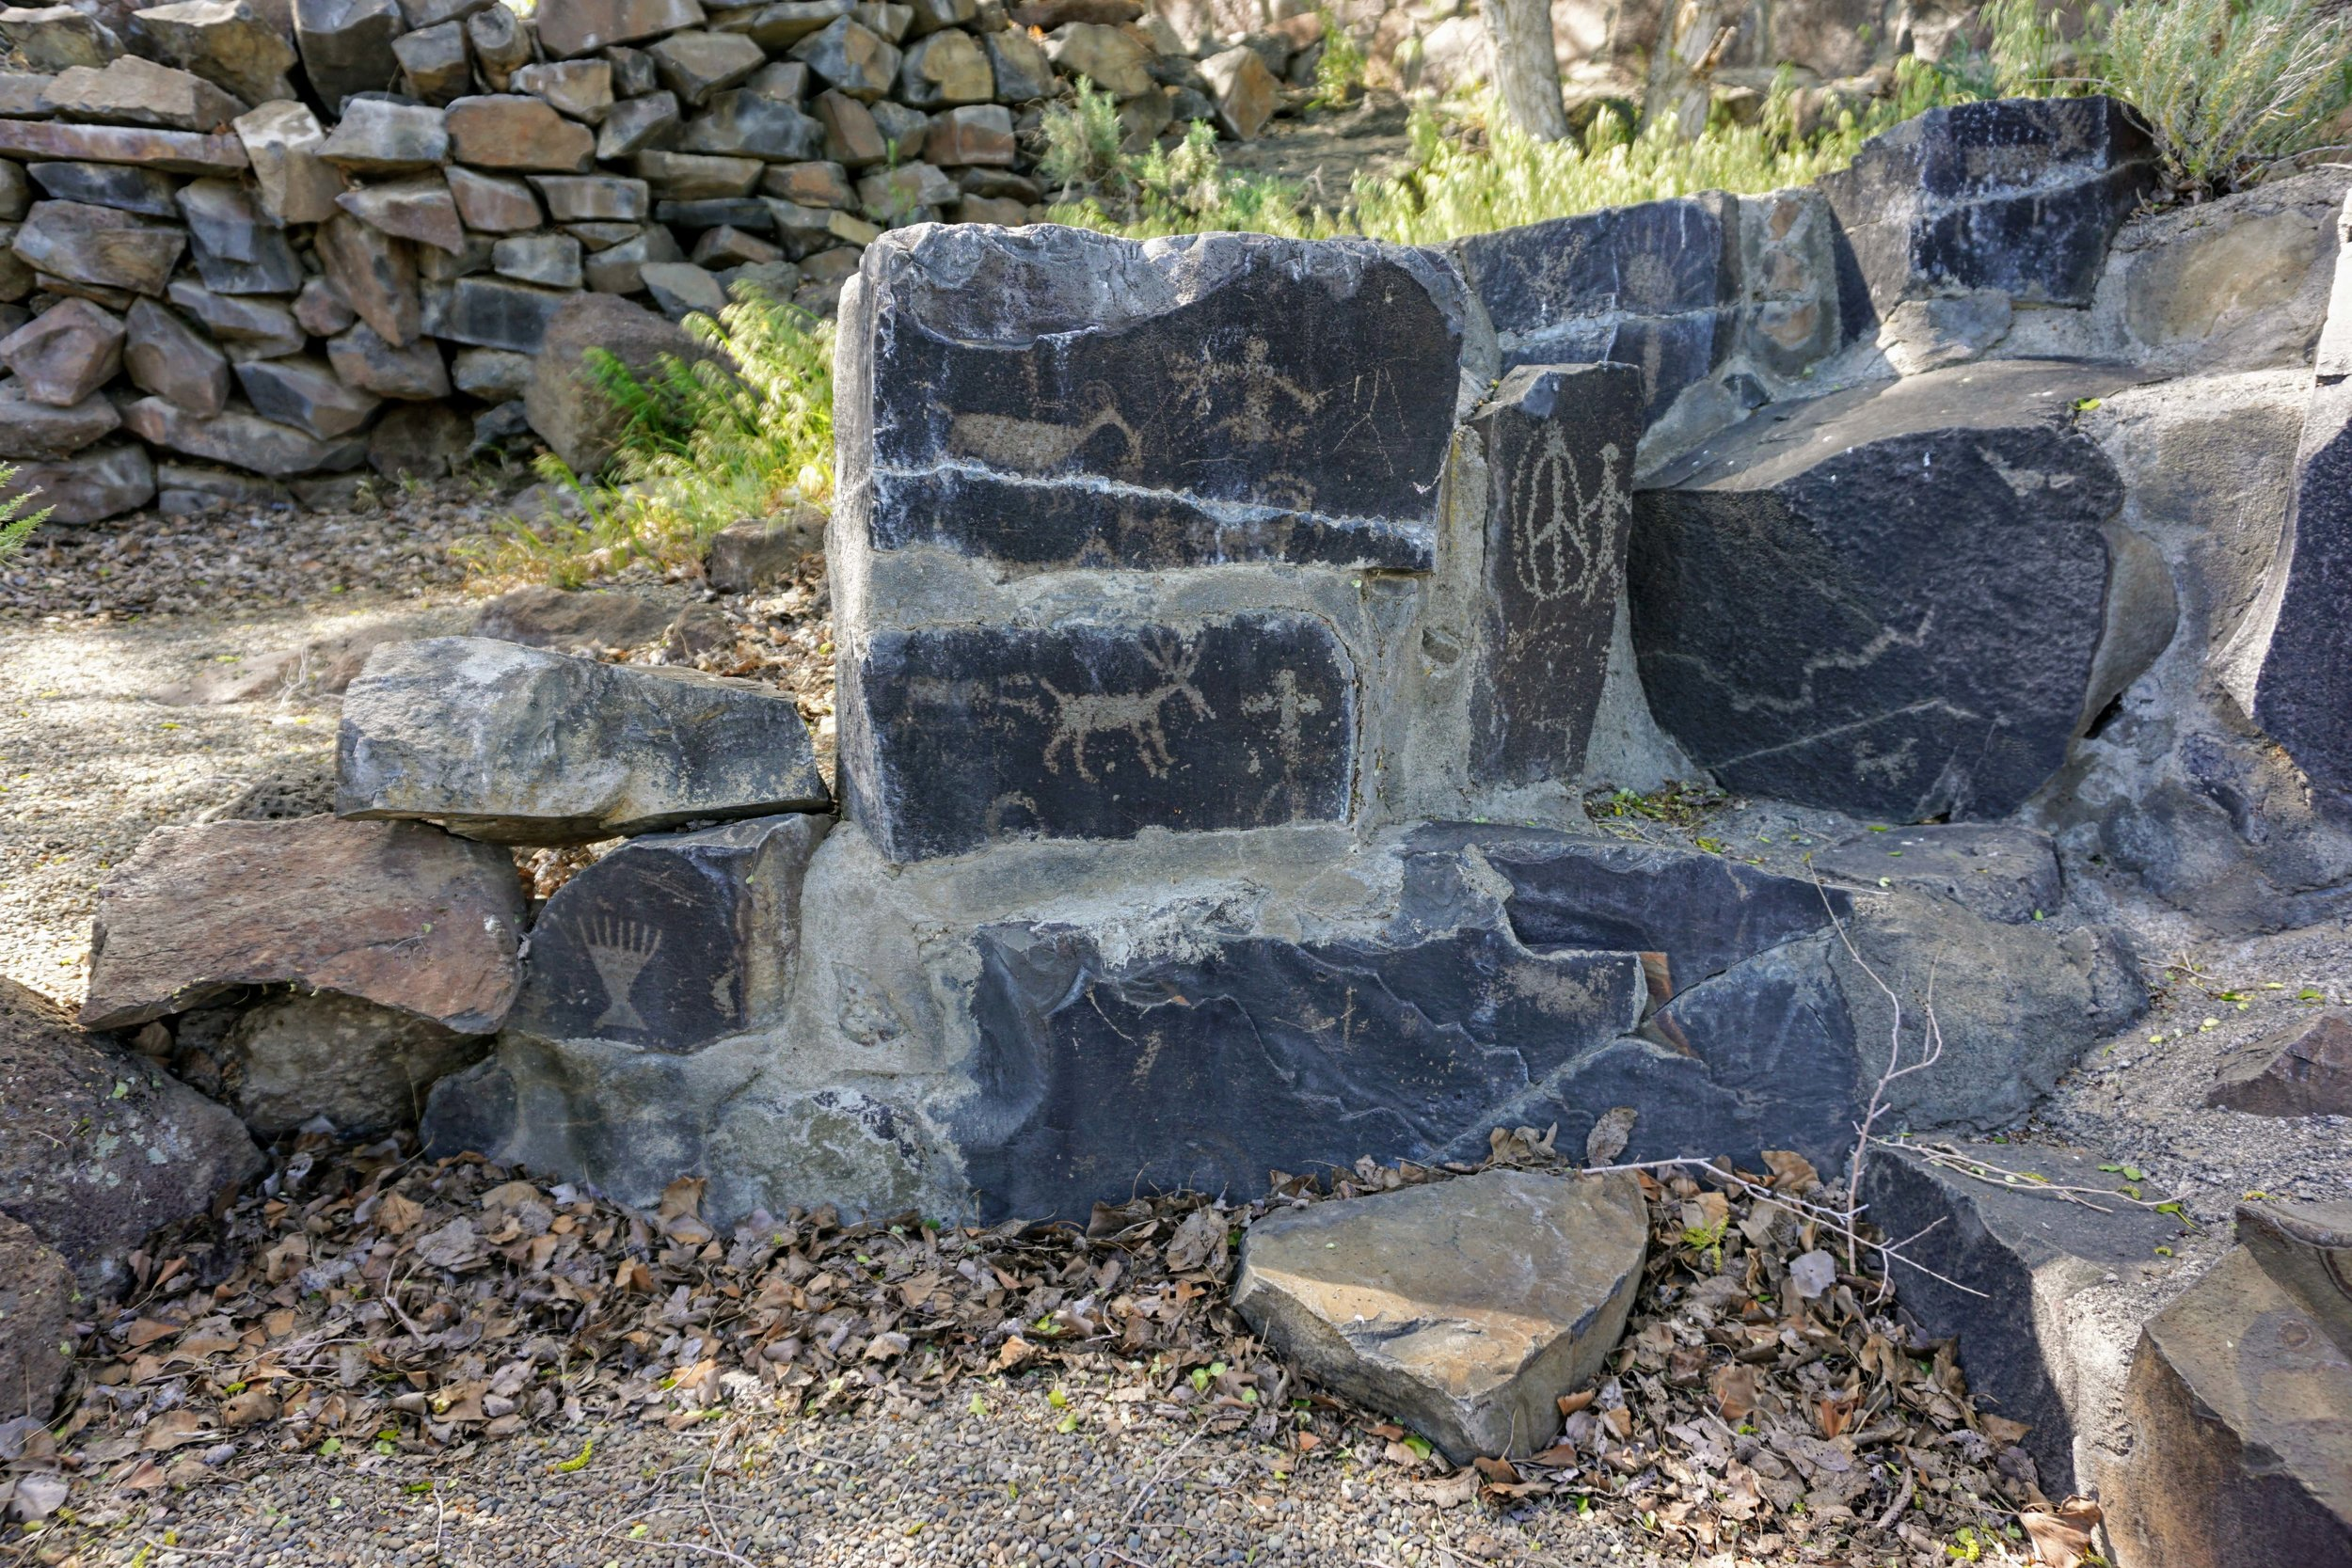 Petroglyphs at Ginkgo Petrified Forest State Park